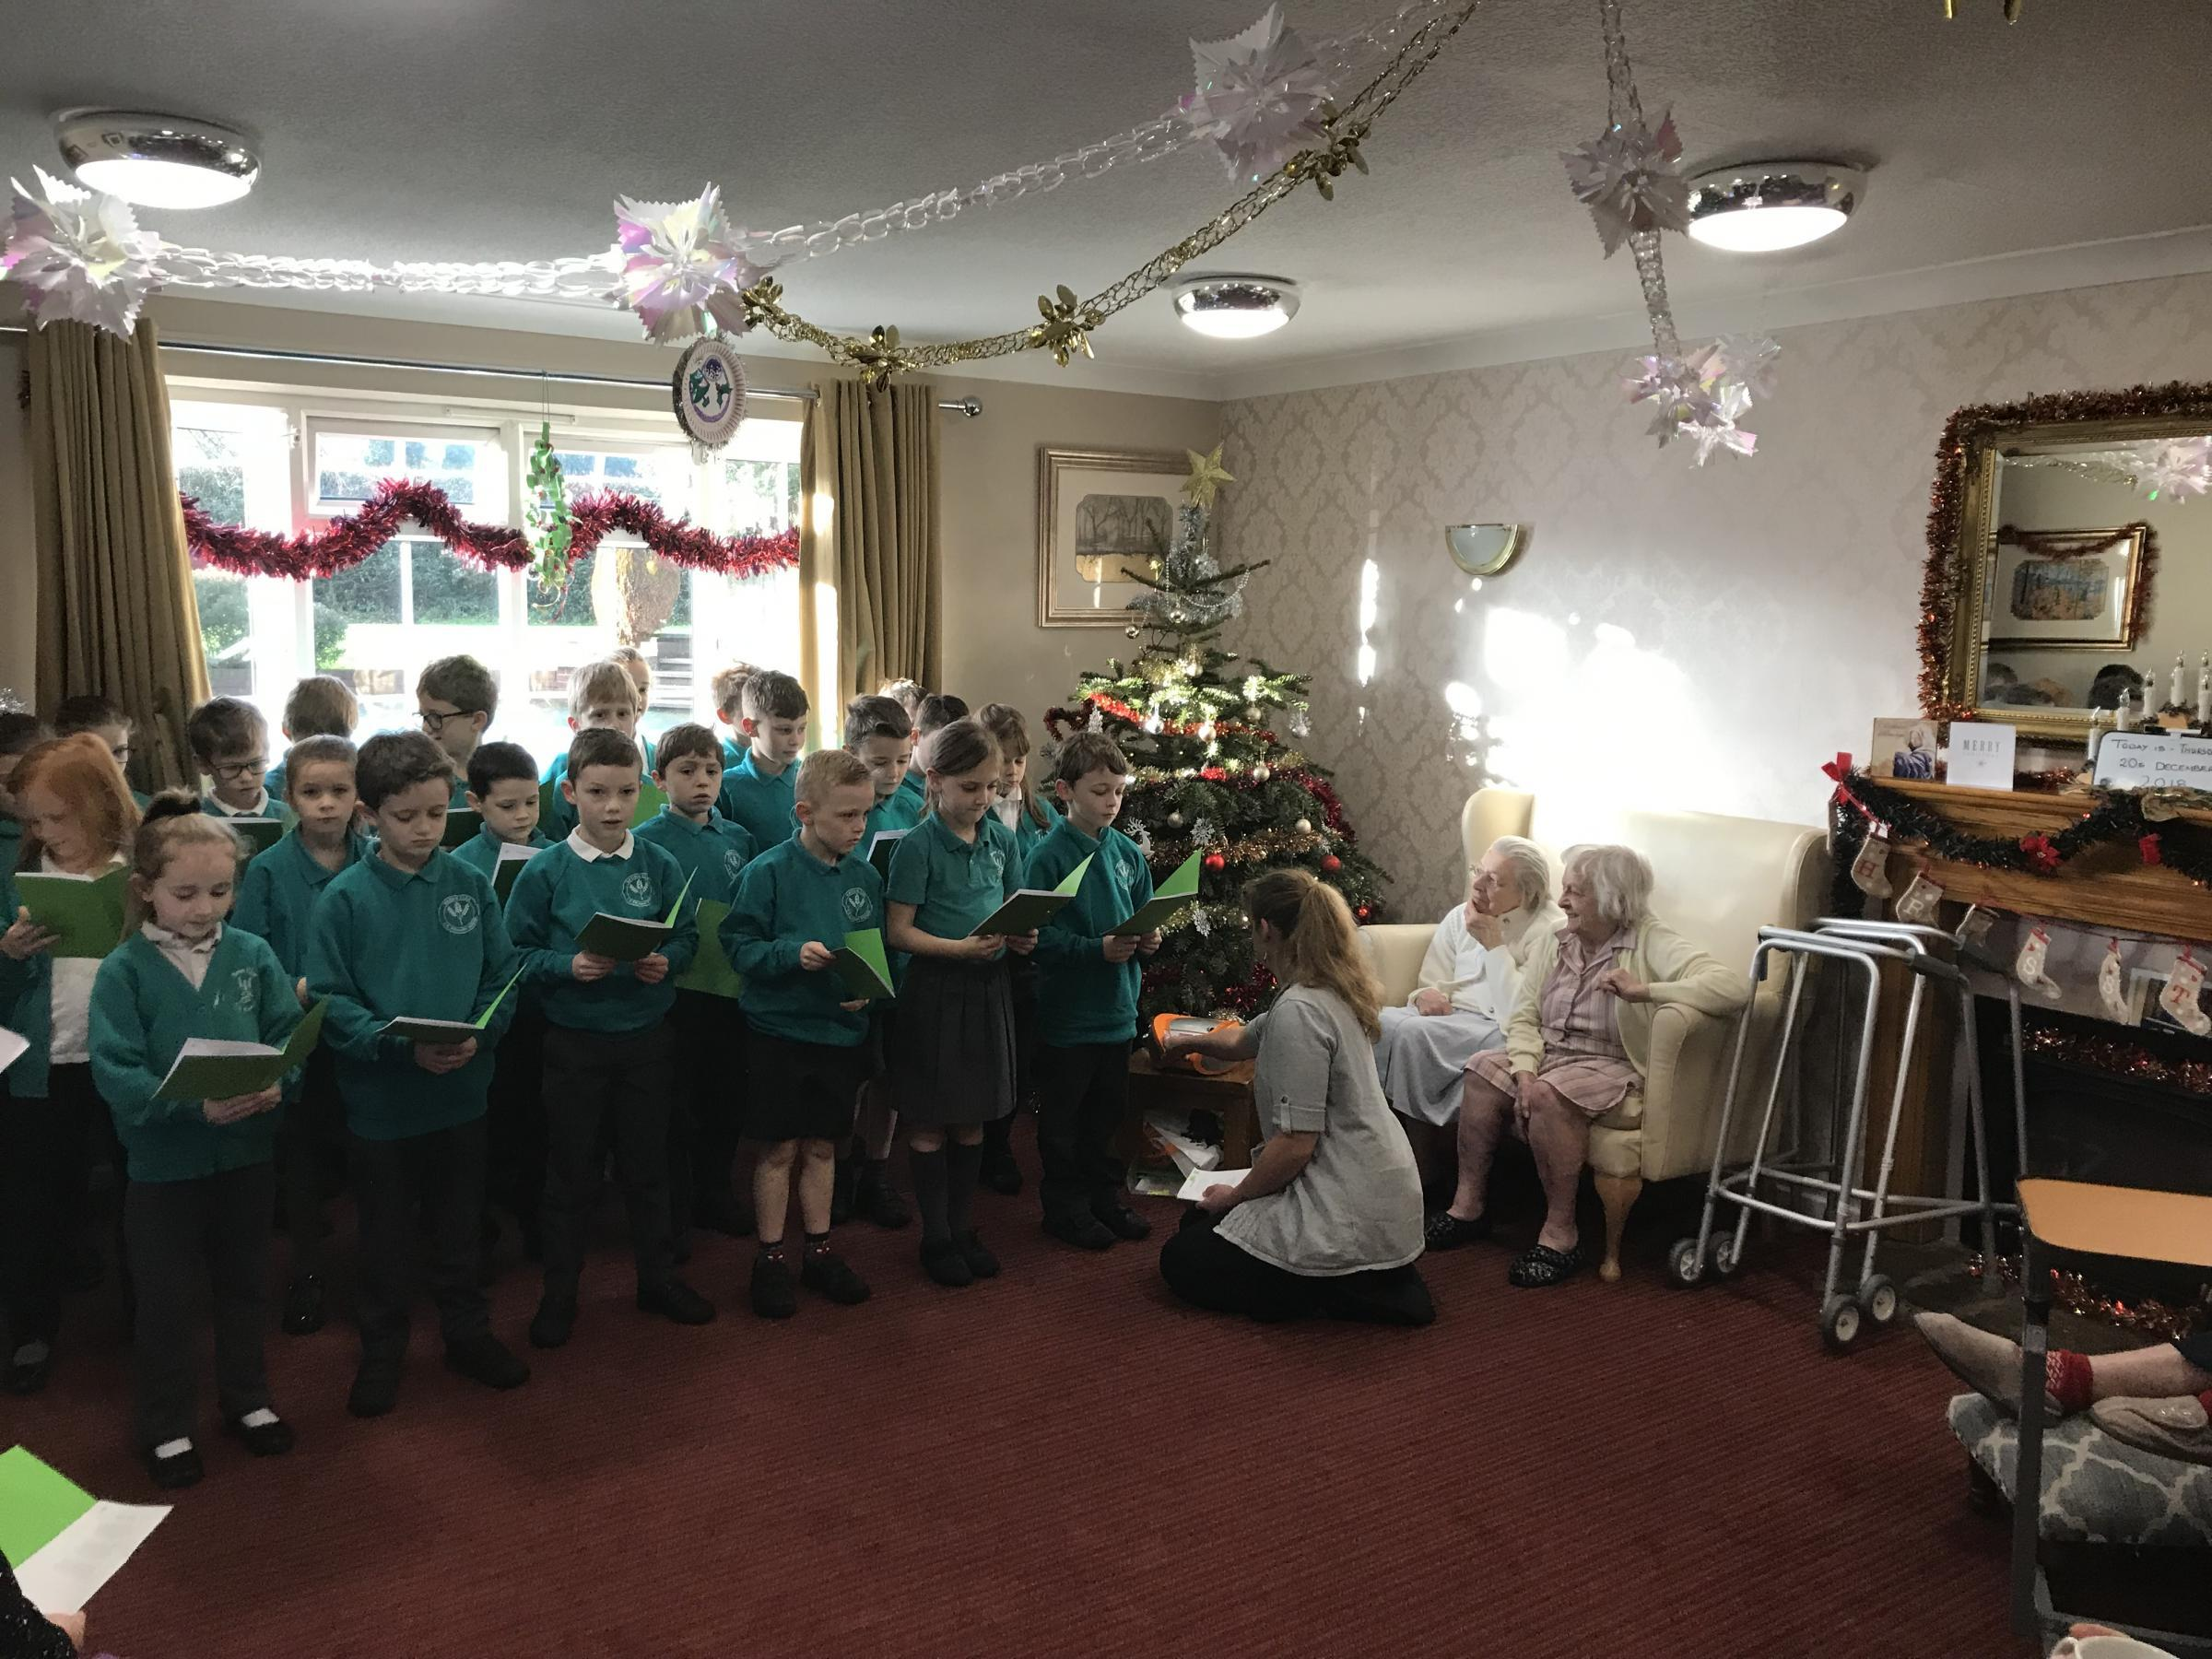 The children in concert just prior to Christmas